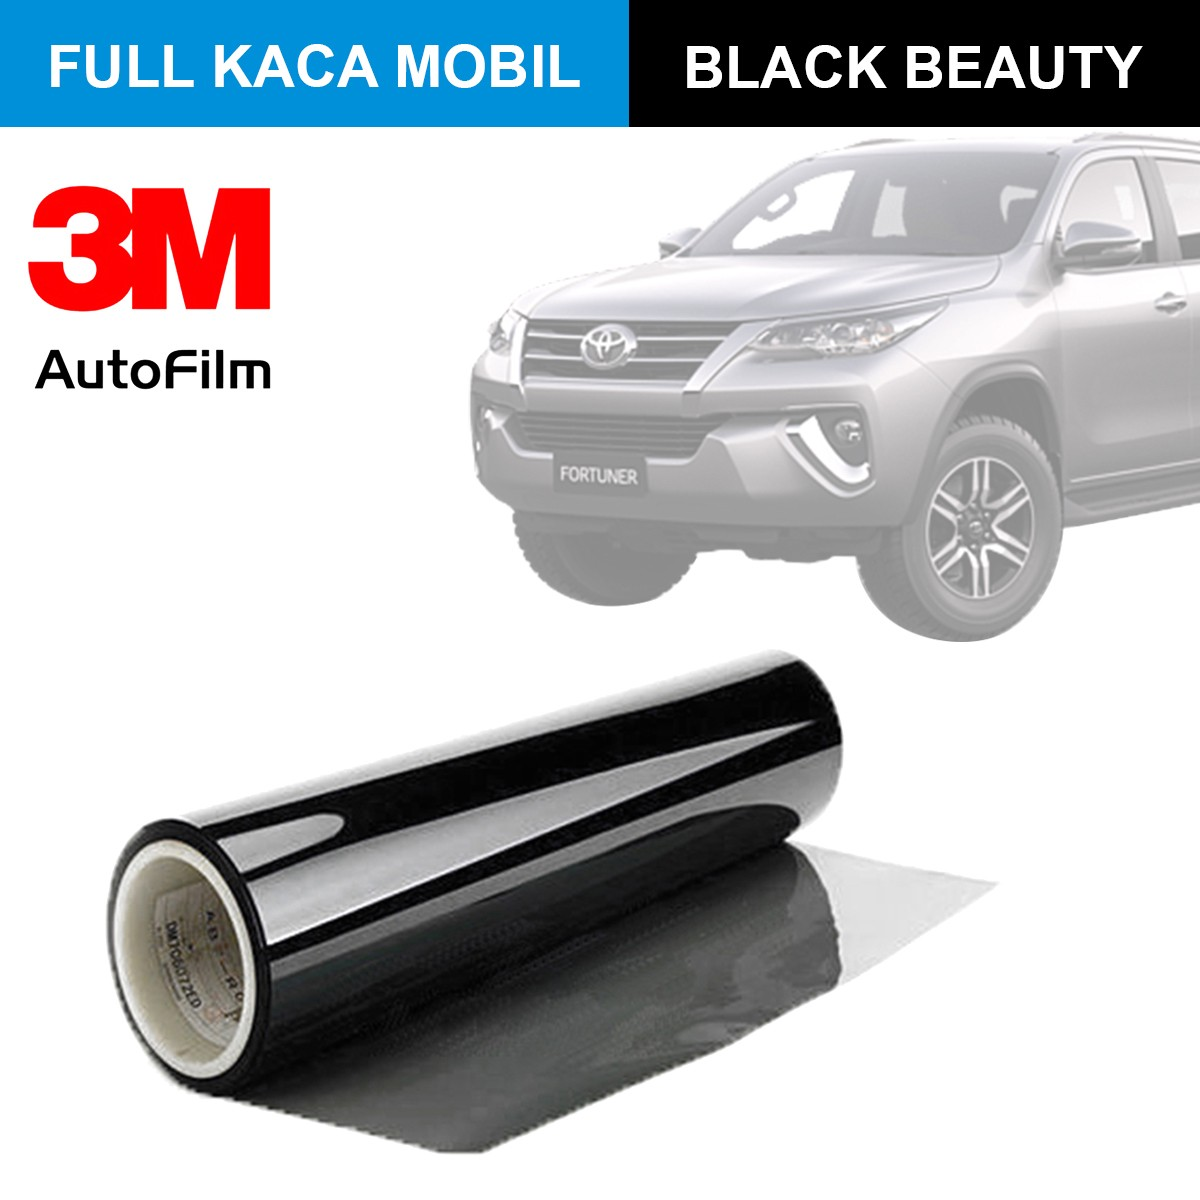 KACA FILM 3M BLACK BEAUTY - (LARGE CAR) FULL KACA